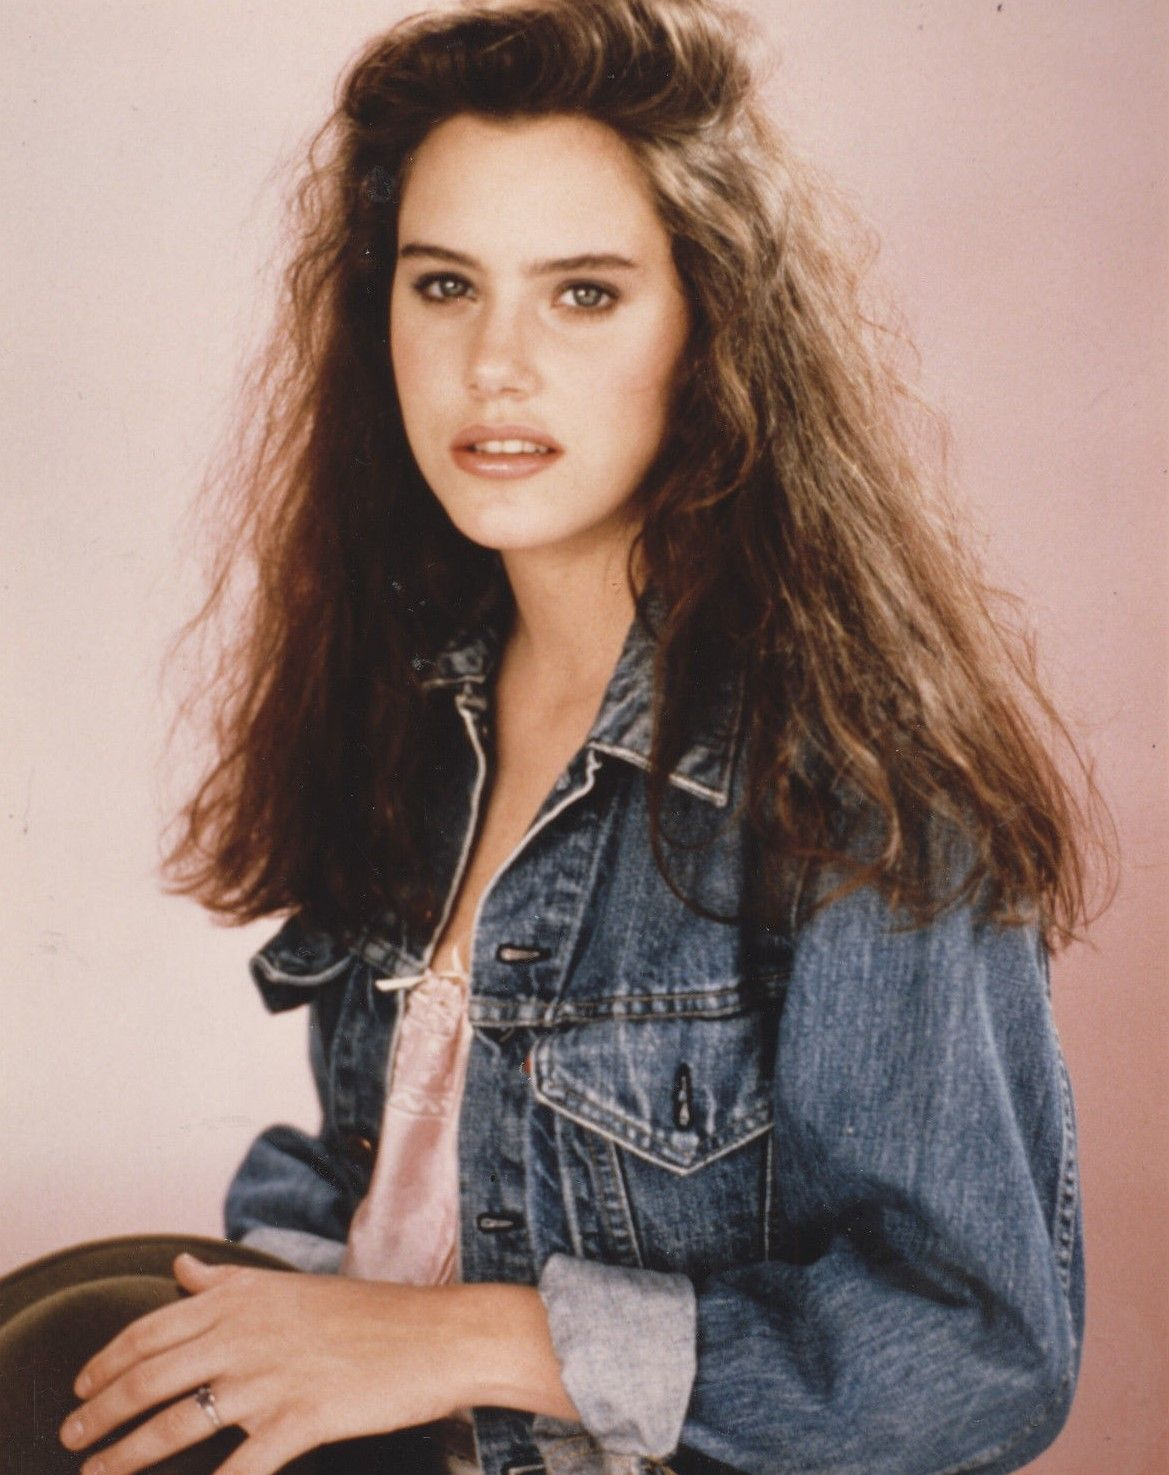 Young Ione Skye nude photos 2019